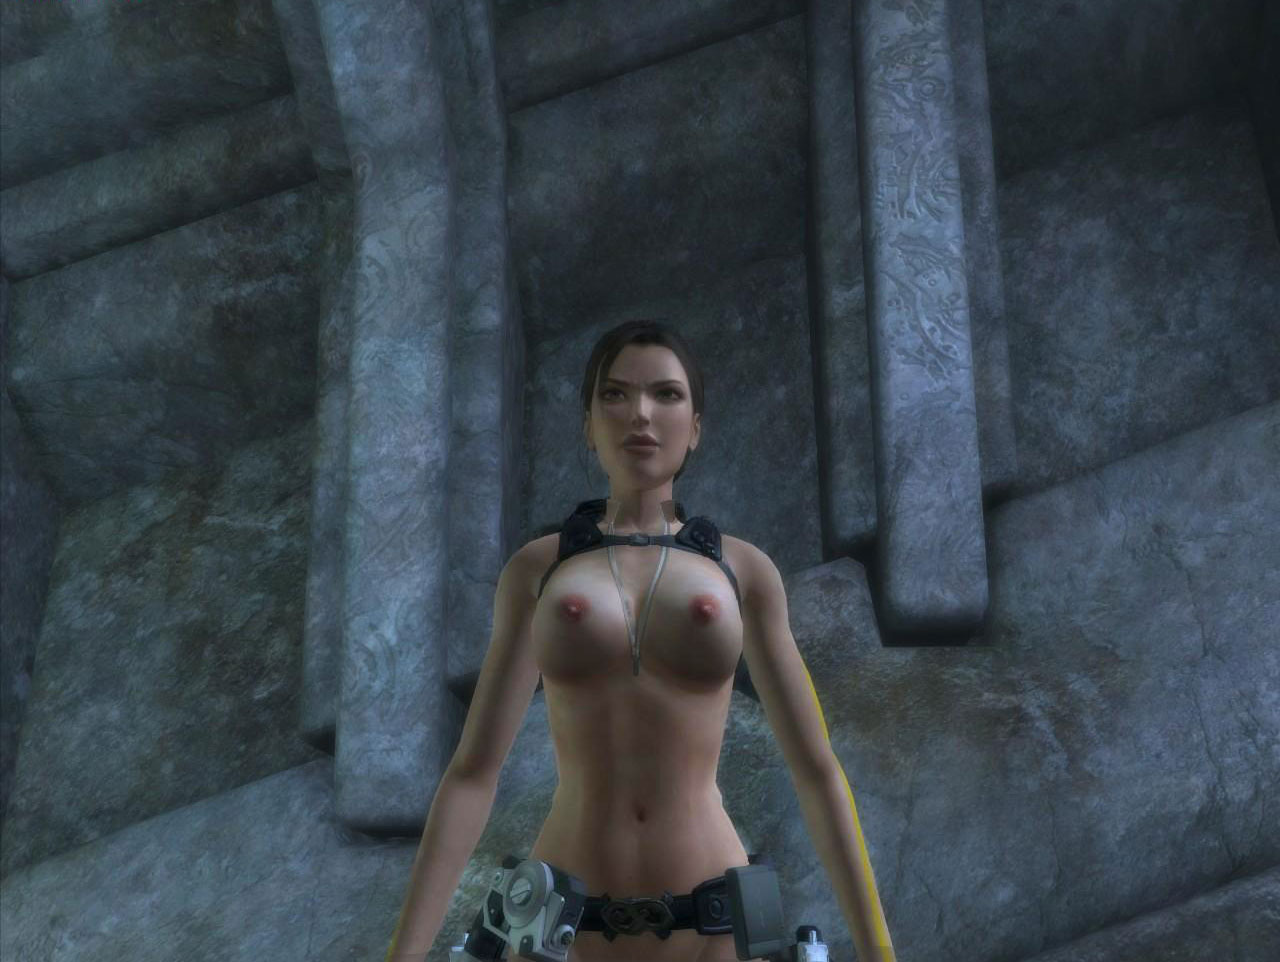 Tomb raider nude by texmode porn photo